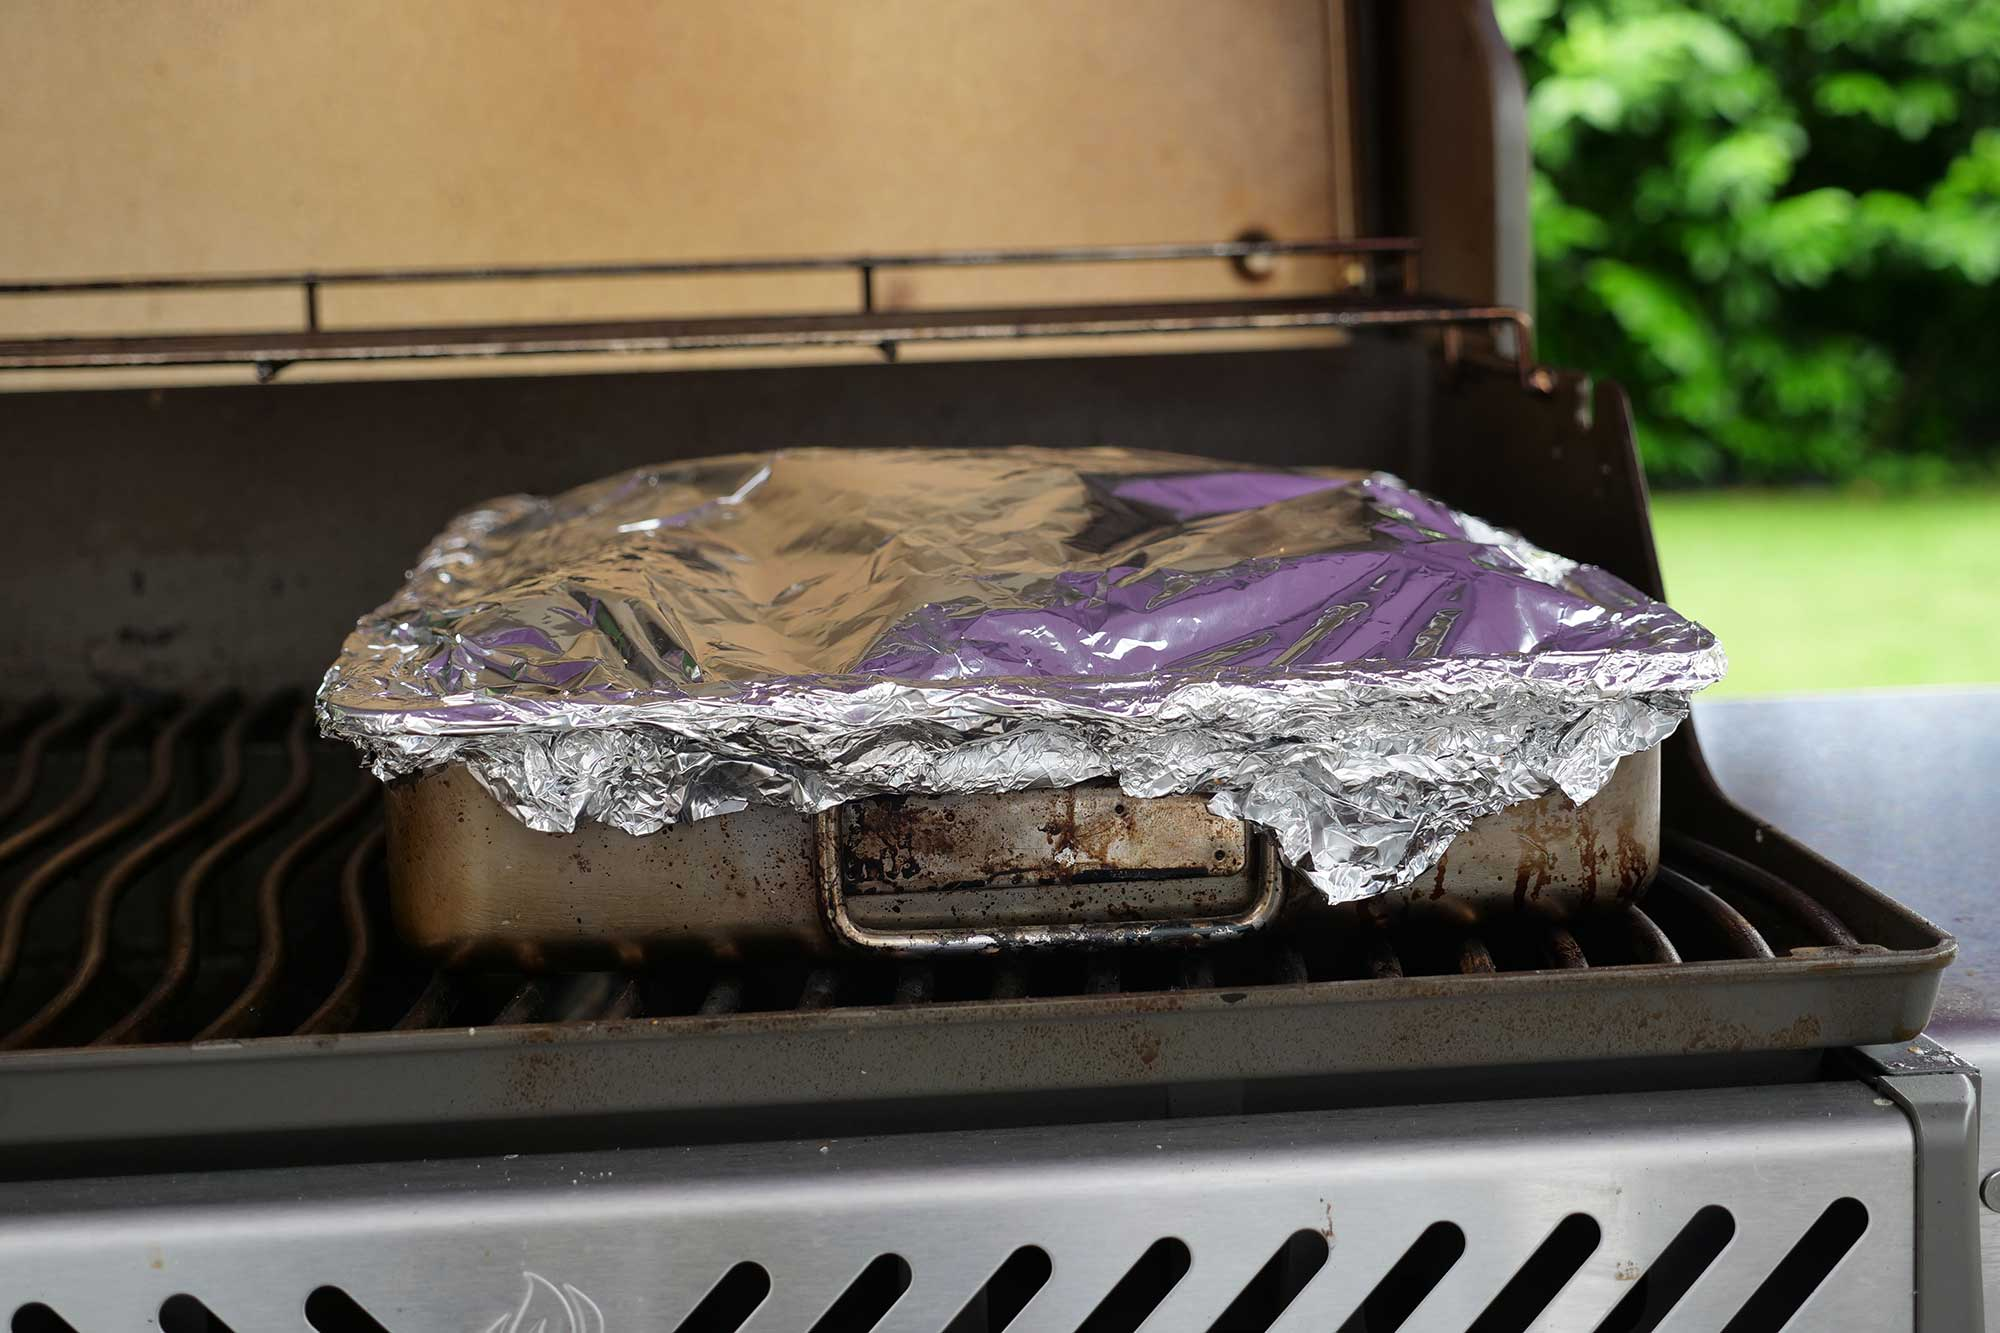 Spareribs Gasgrill Sizzle Brothers : Spareribs vom grill daempfen sizzle brothers bbq gerichte